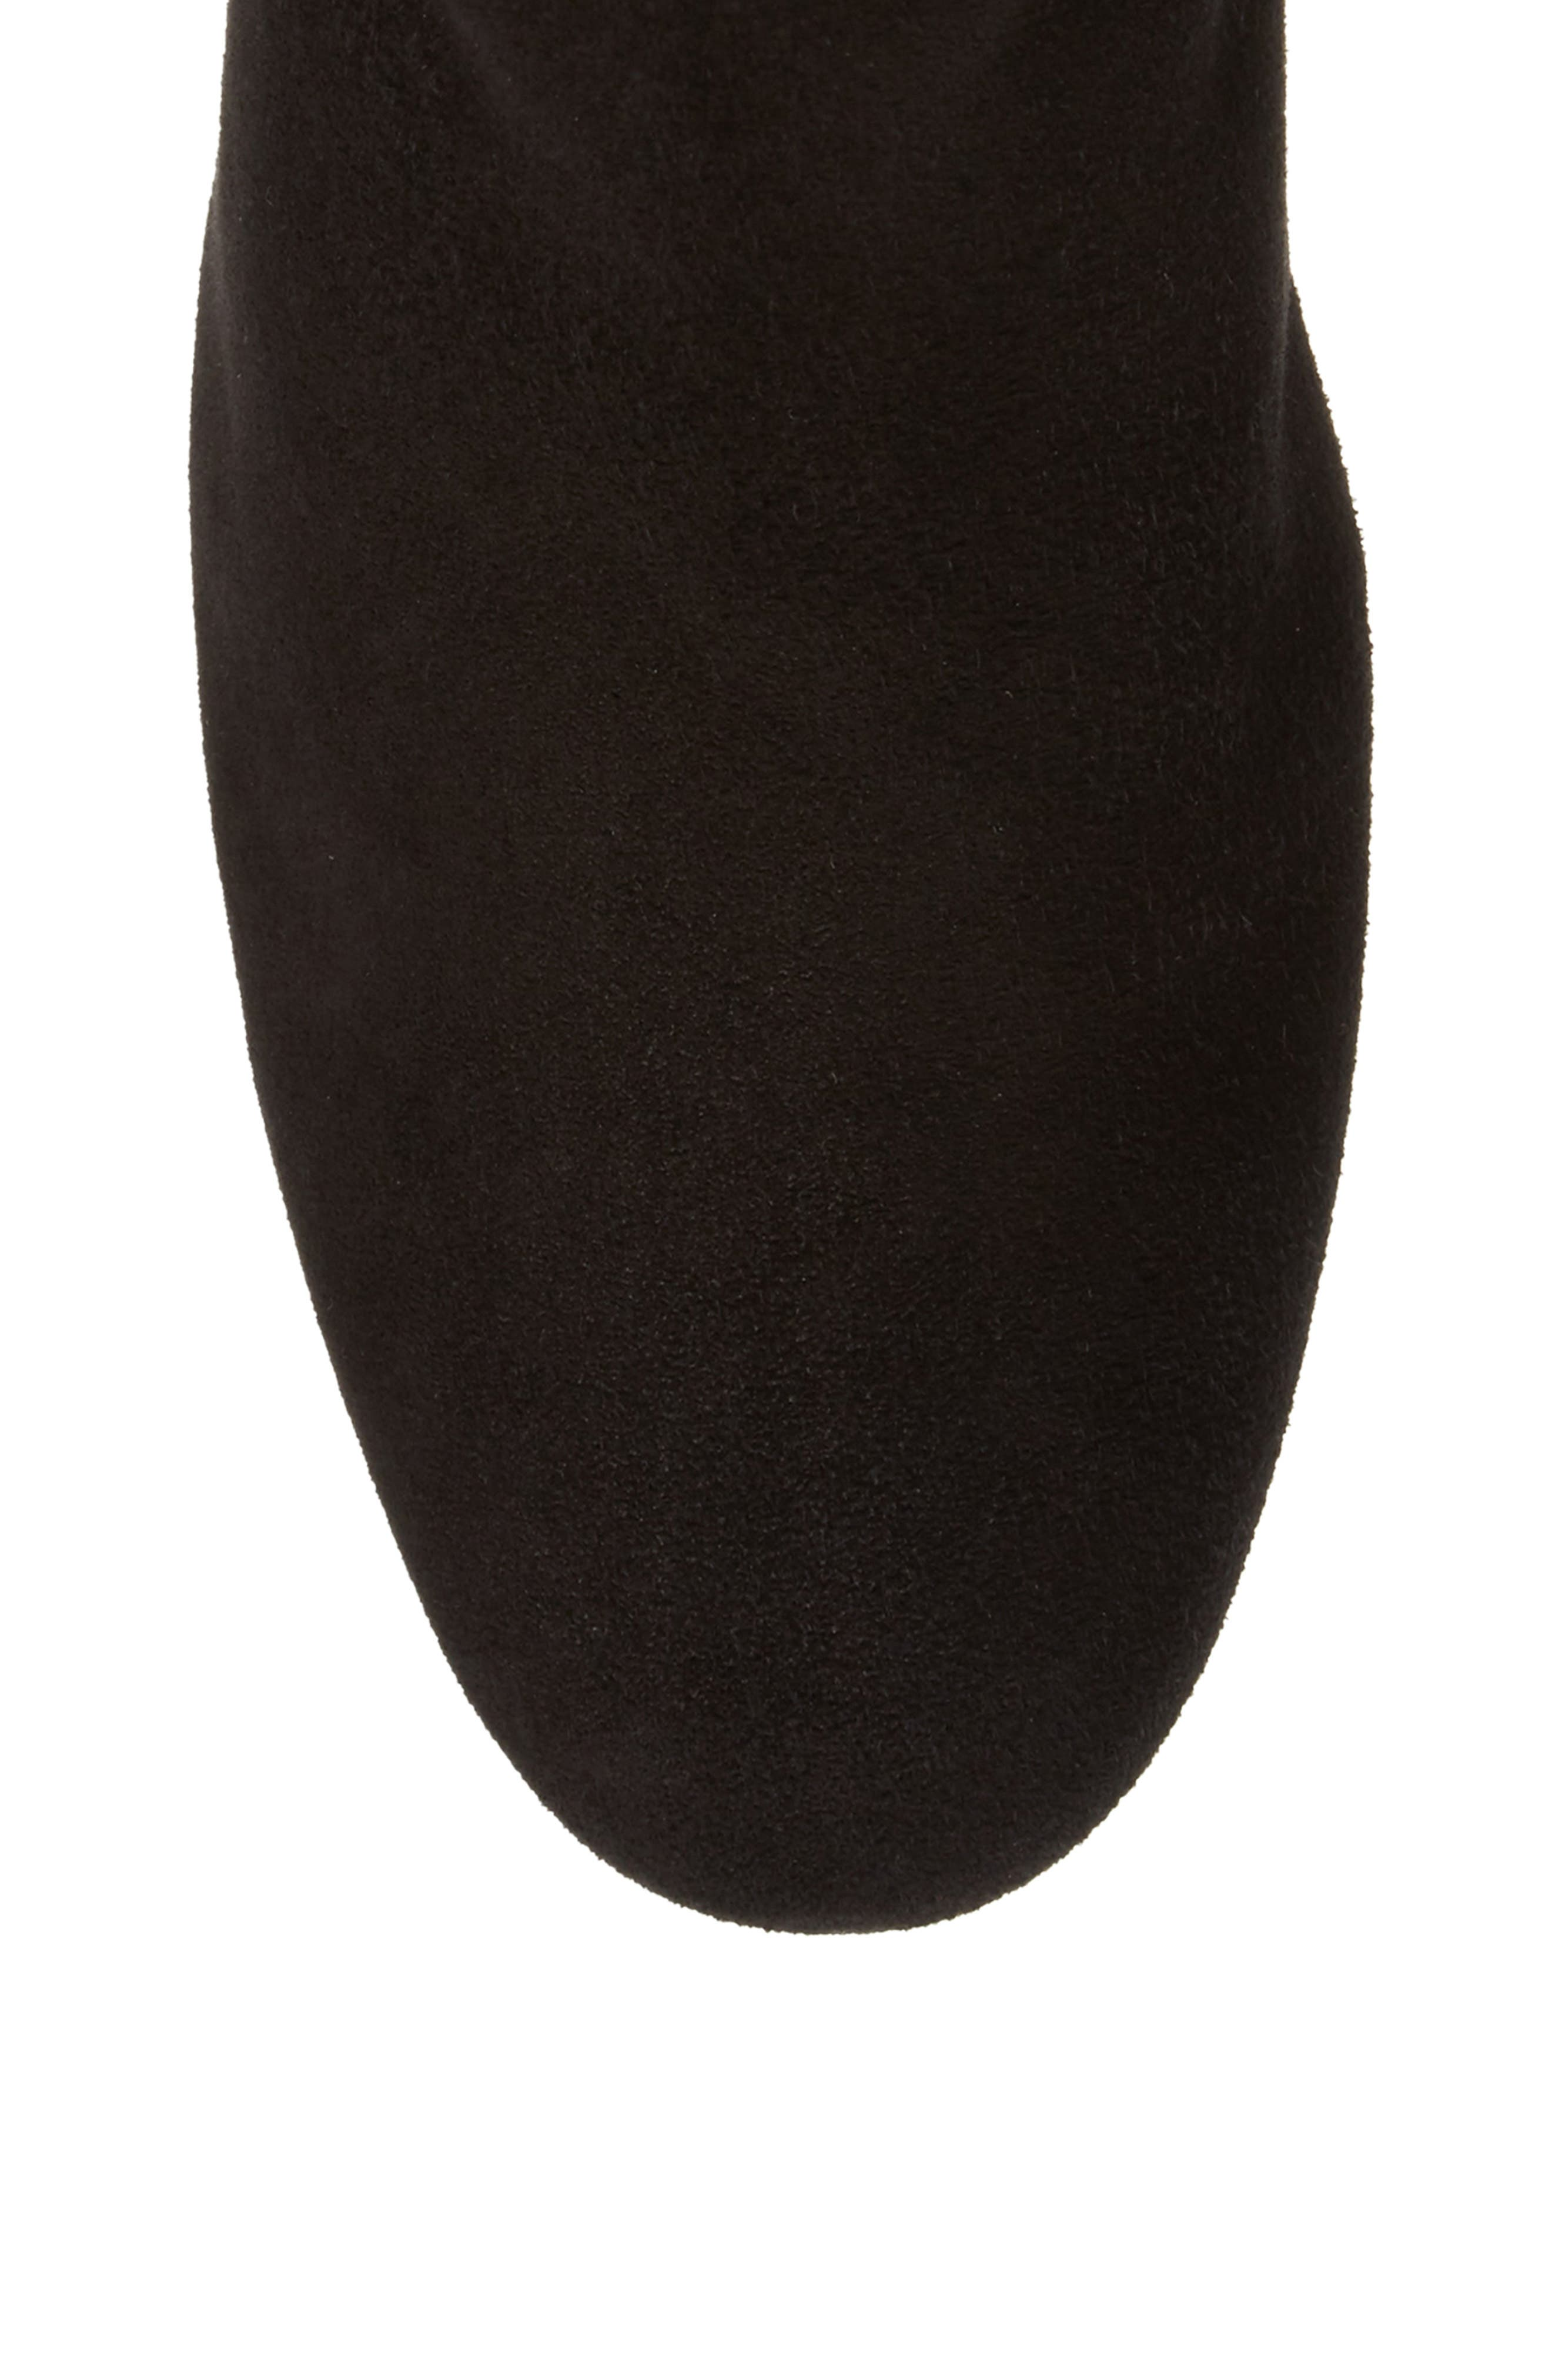 Over the Knee Boot,                             Alternate thumbnail 5, color,                             Black Suede